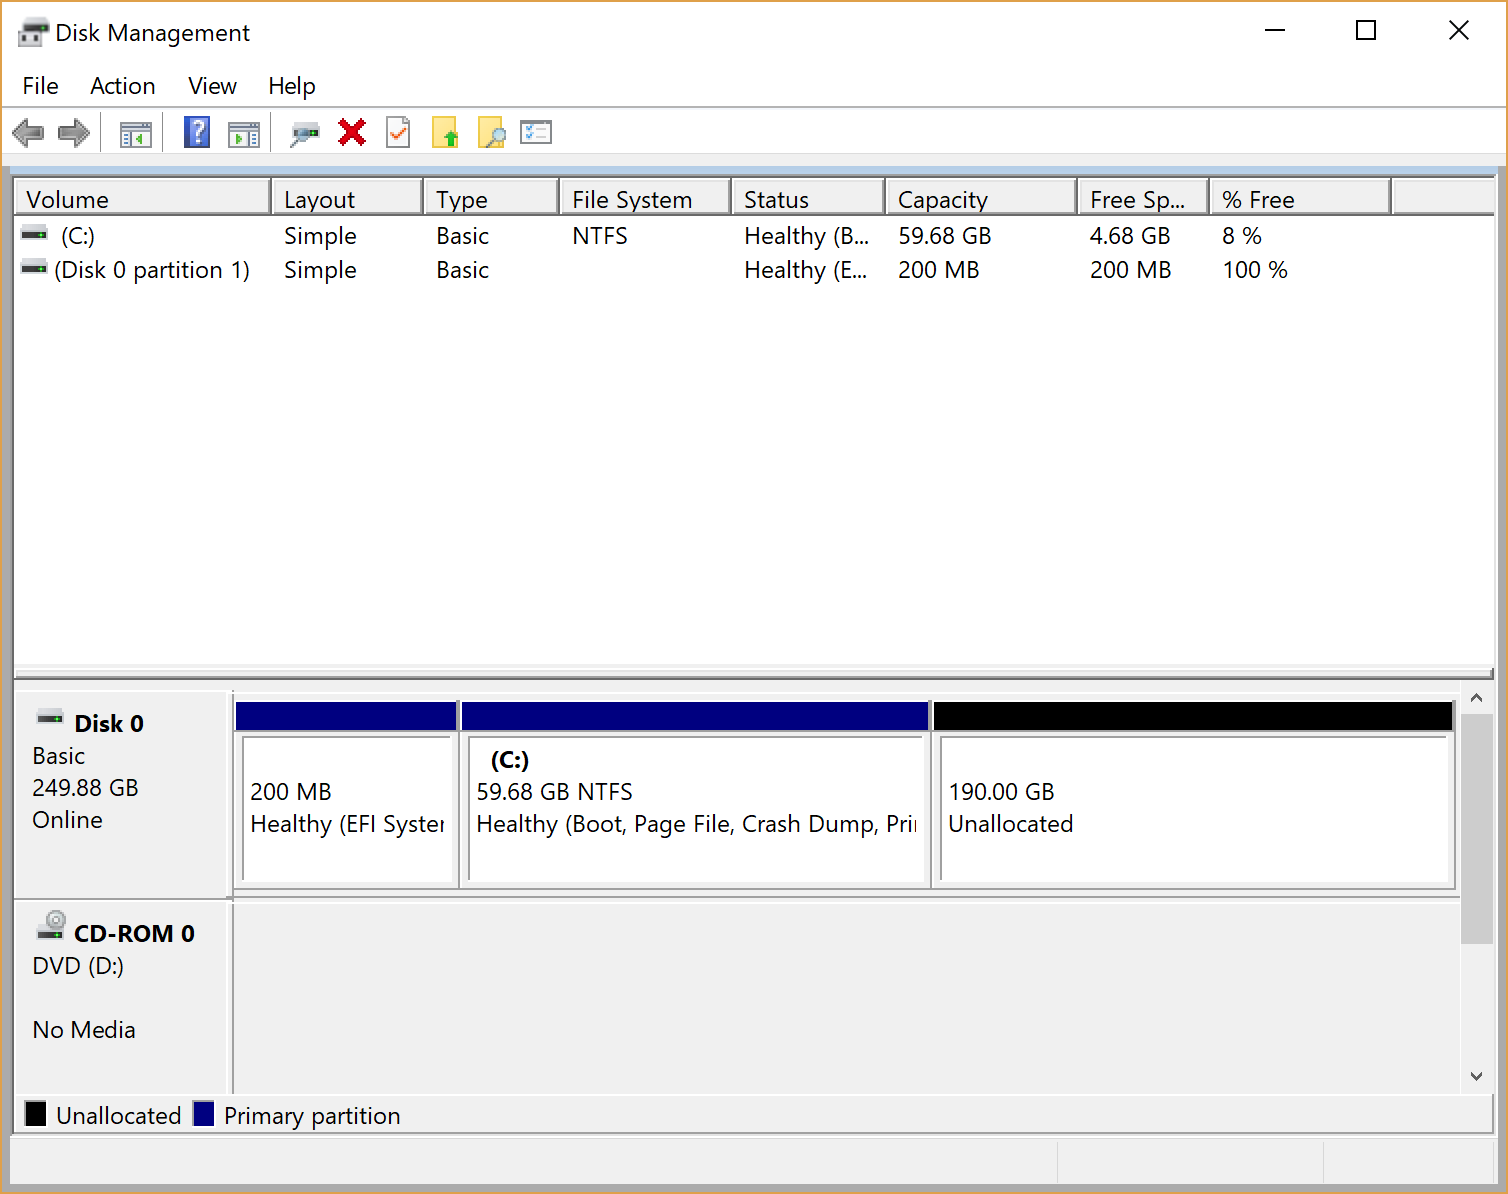 The Windows Disk Management tool. It shows Disk 0 with a 200 MB EFI volume, a 59.68 GB NTFS volume, and 190.00 GB of unallocated space.